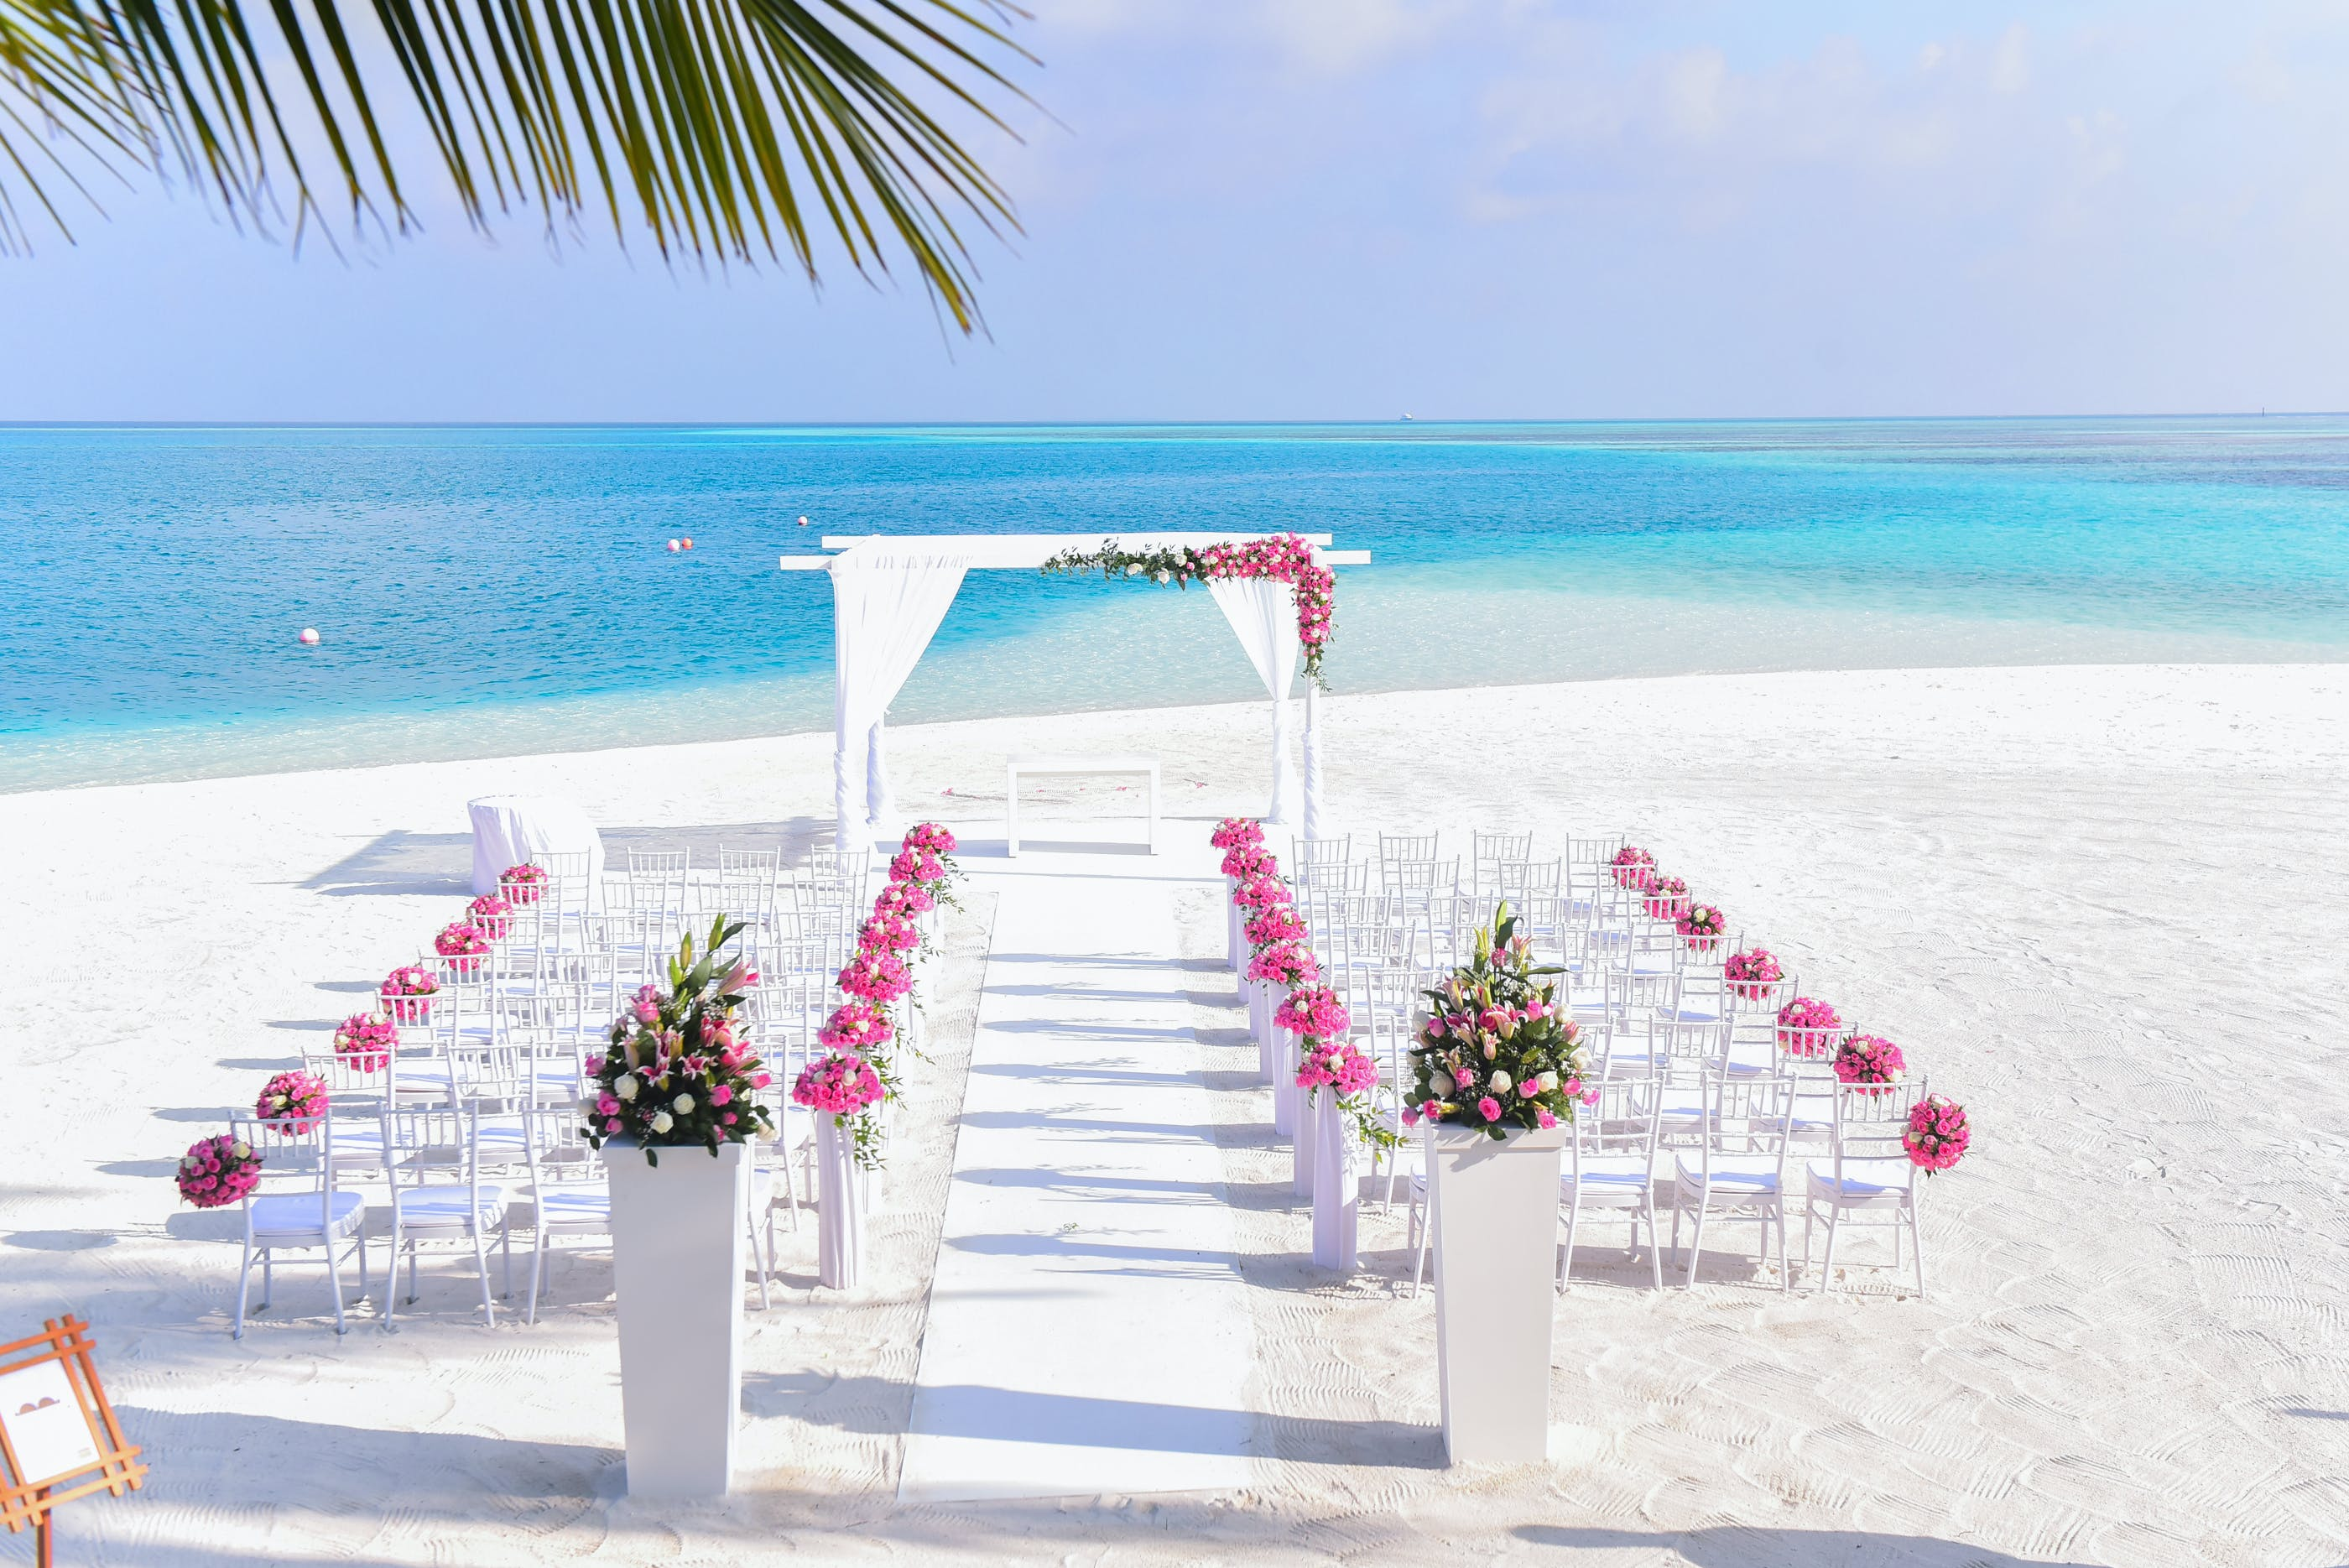 beach, beach wedding, chairs